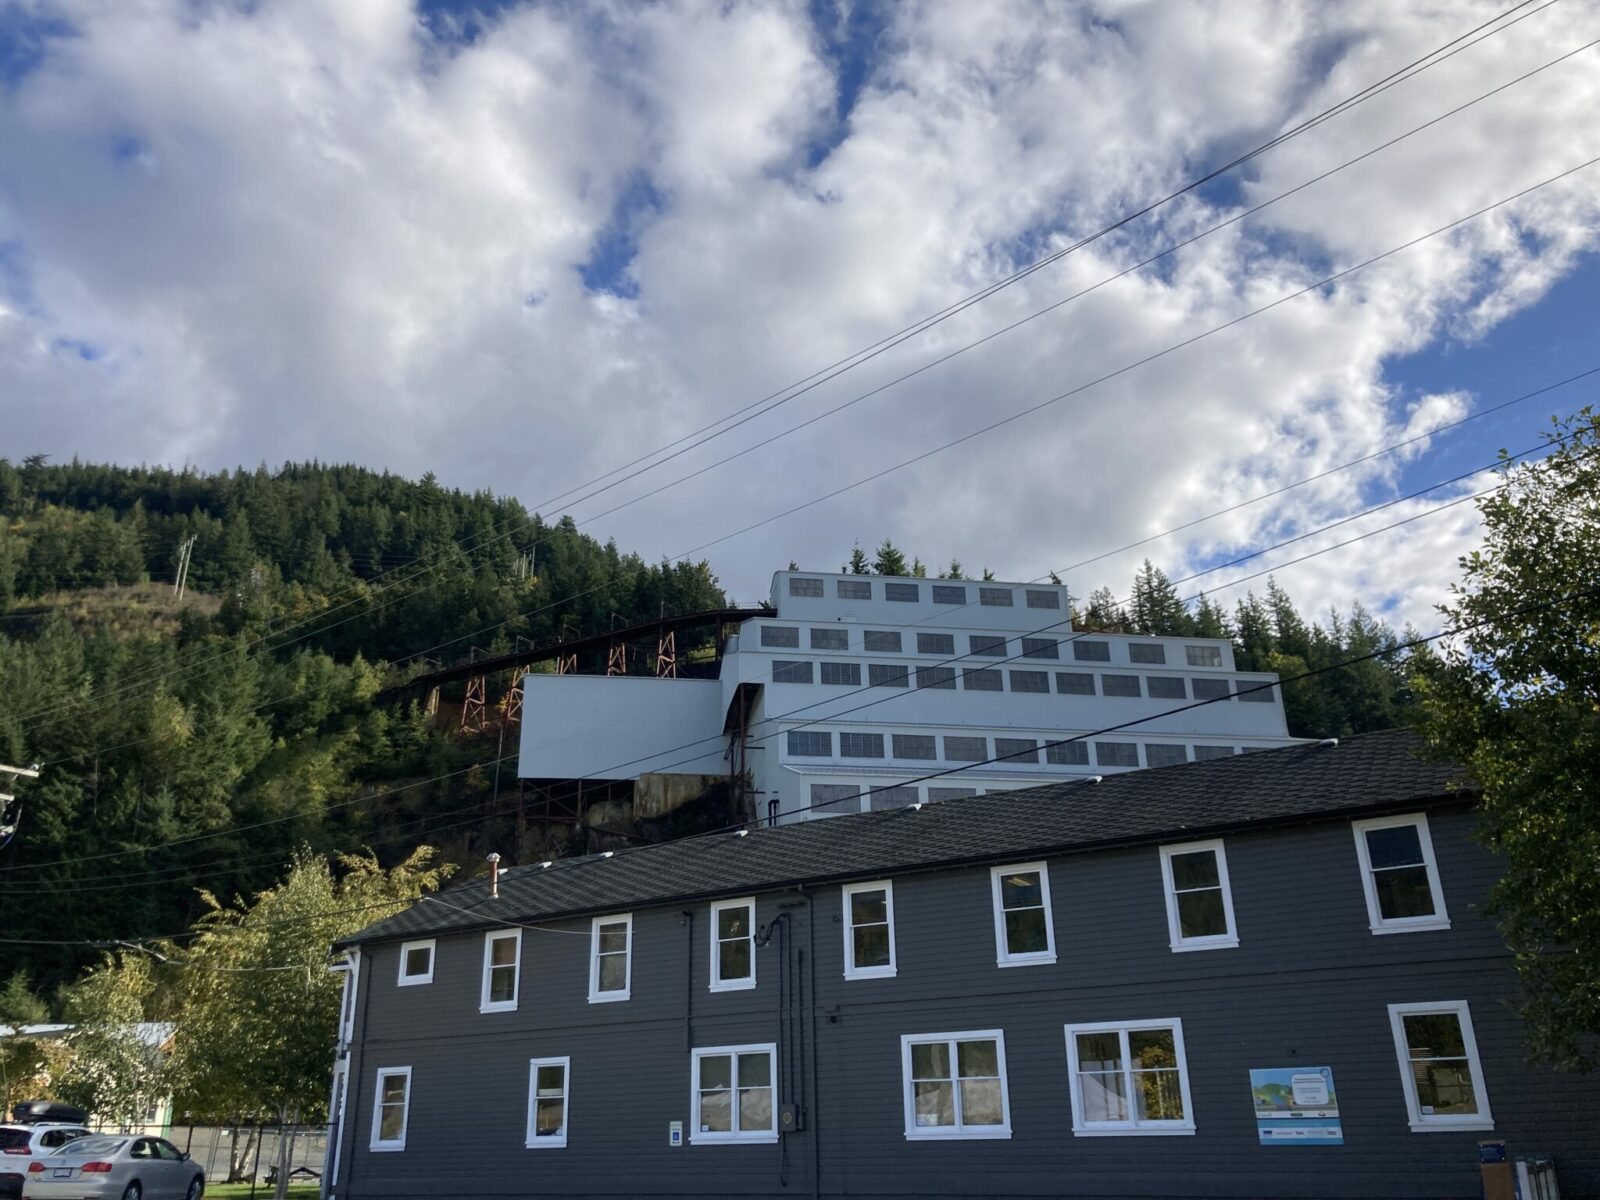 A gray 12 story building connected to the side of a mountain with historic mining trestles at the Britannia Mining Museum along the Vancouver to Whistler drive.